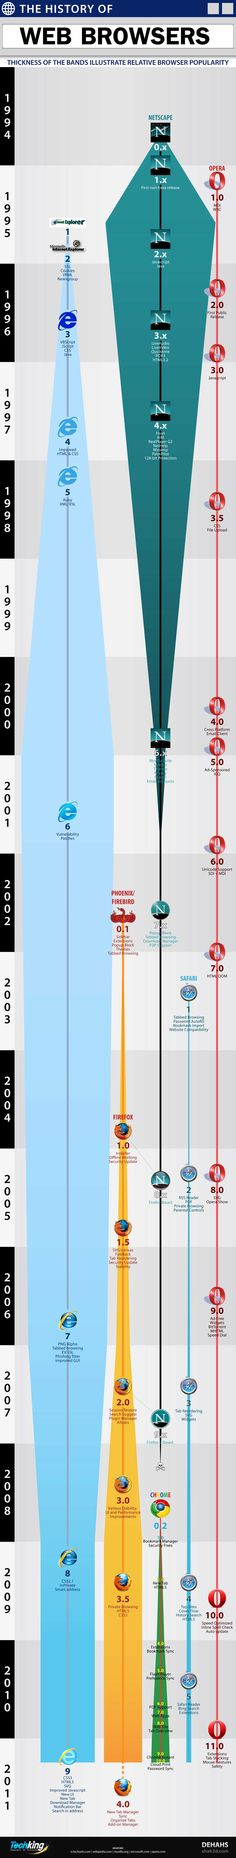 A visual history of the web browser